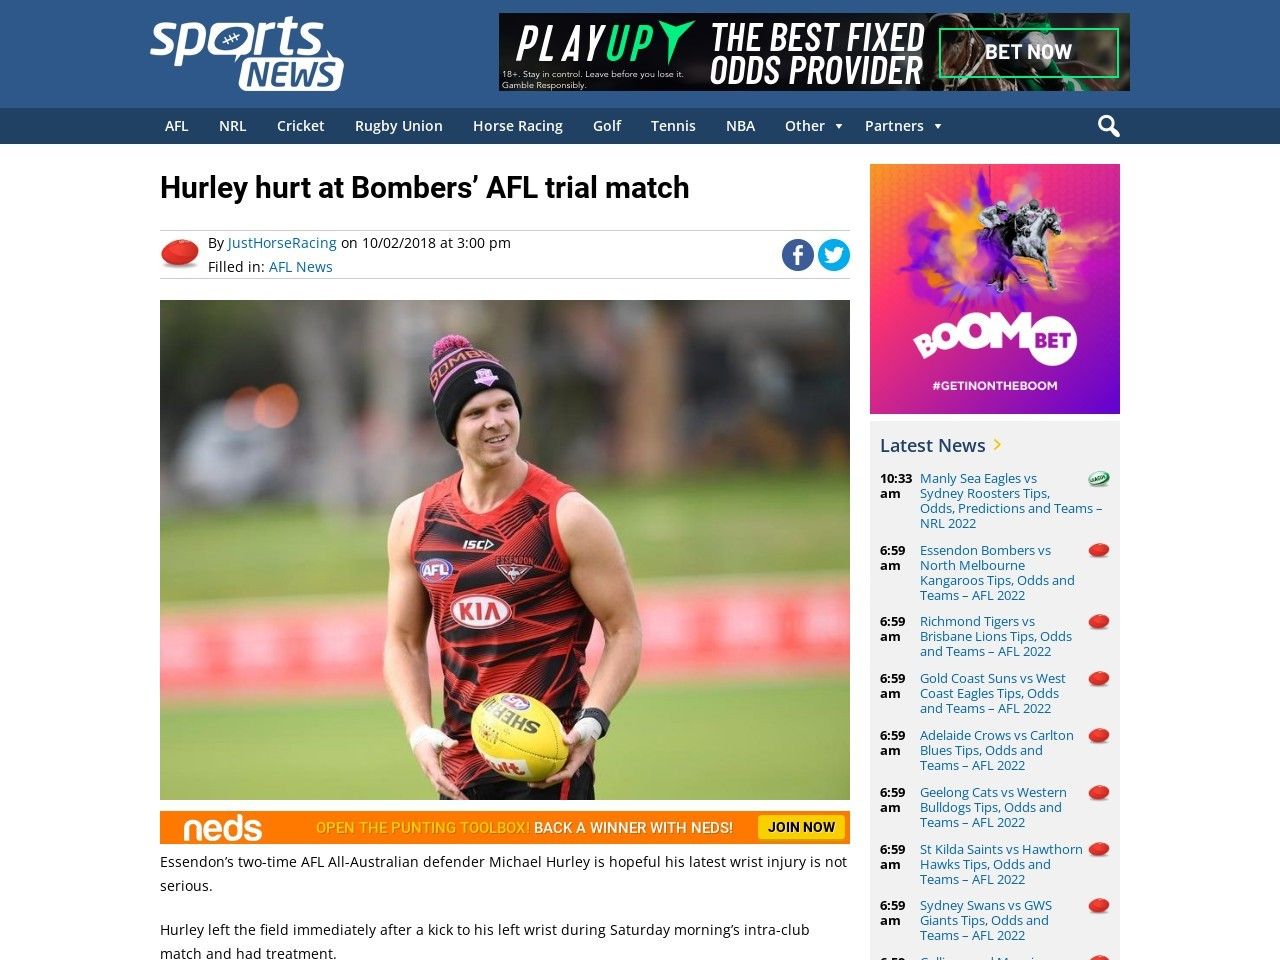 Hurley hurt at Bombers' AFL trial match